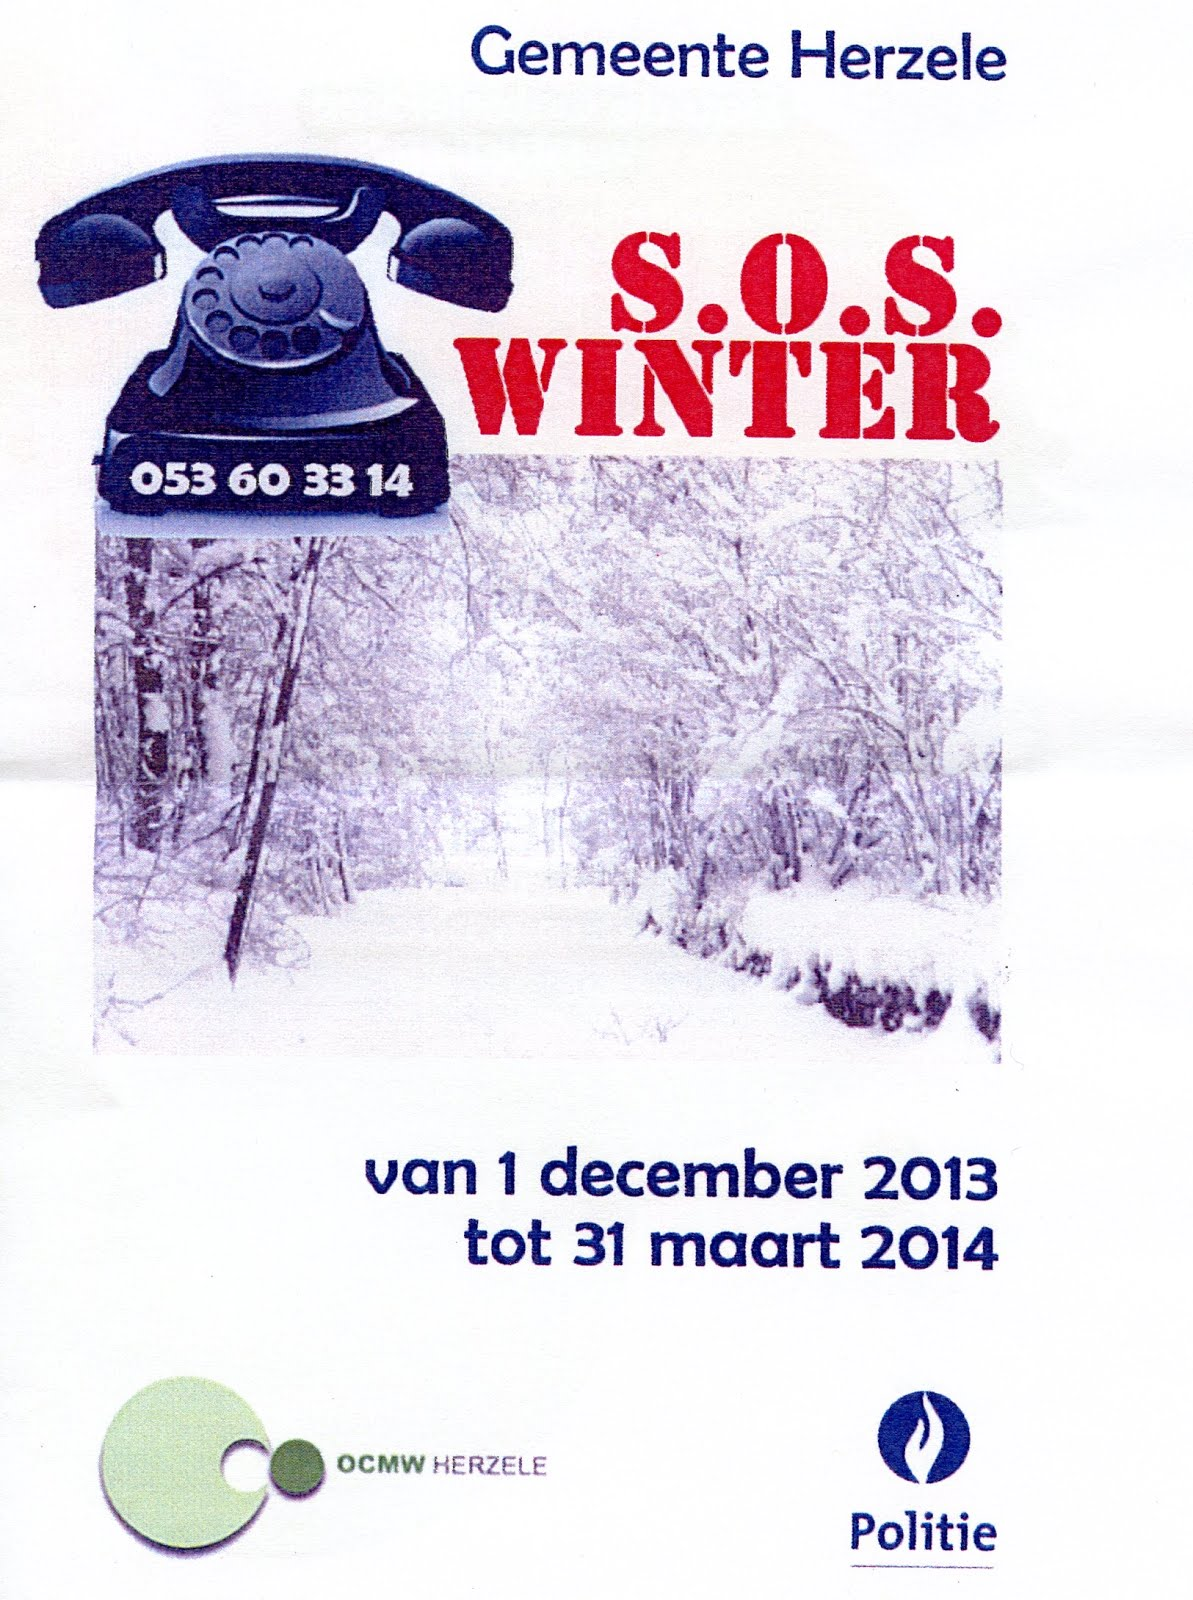 S.O.S WINTER te HERZELE